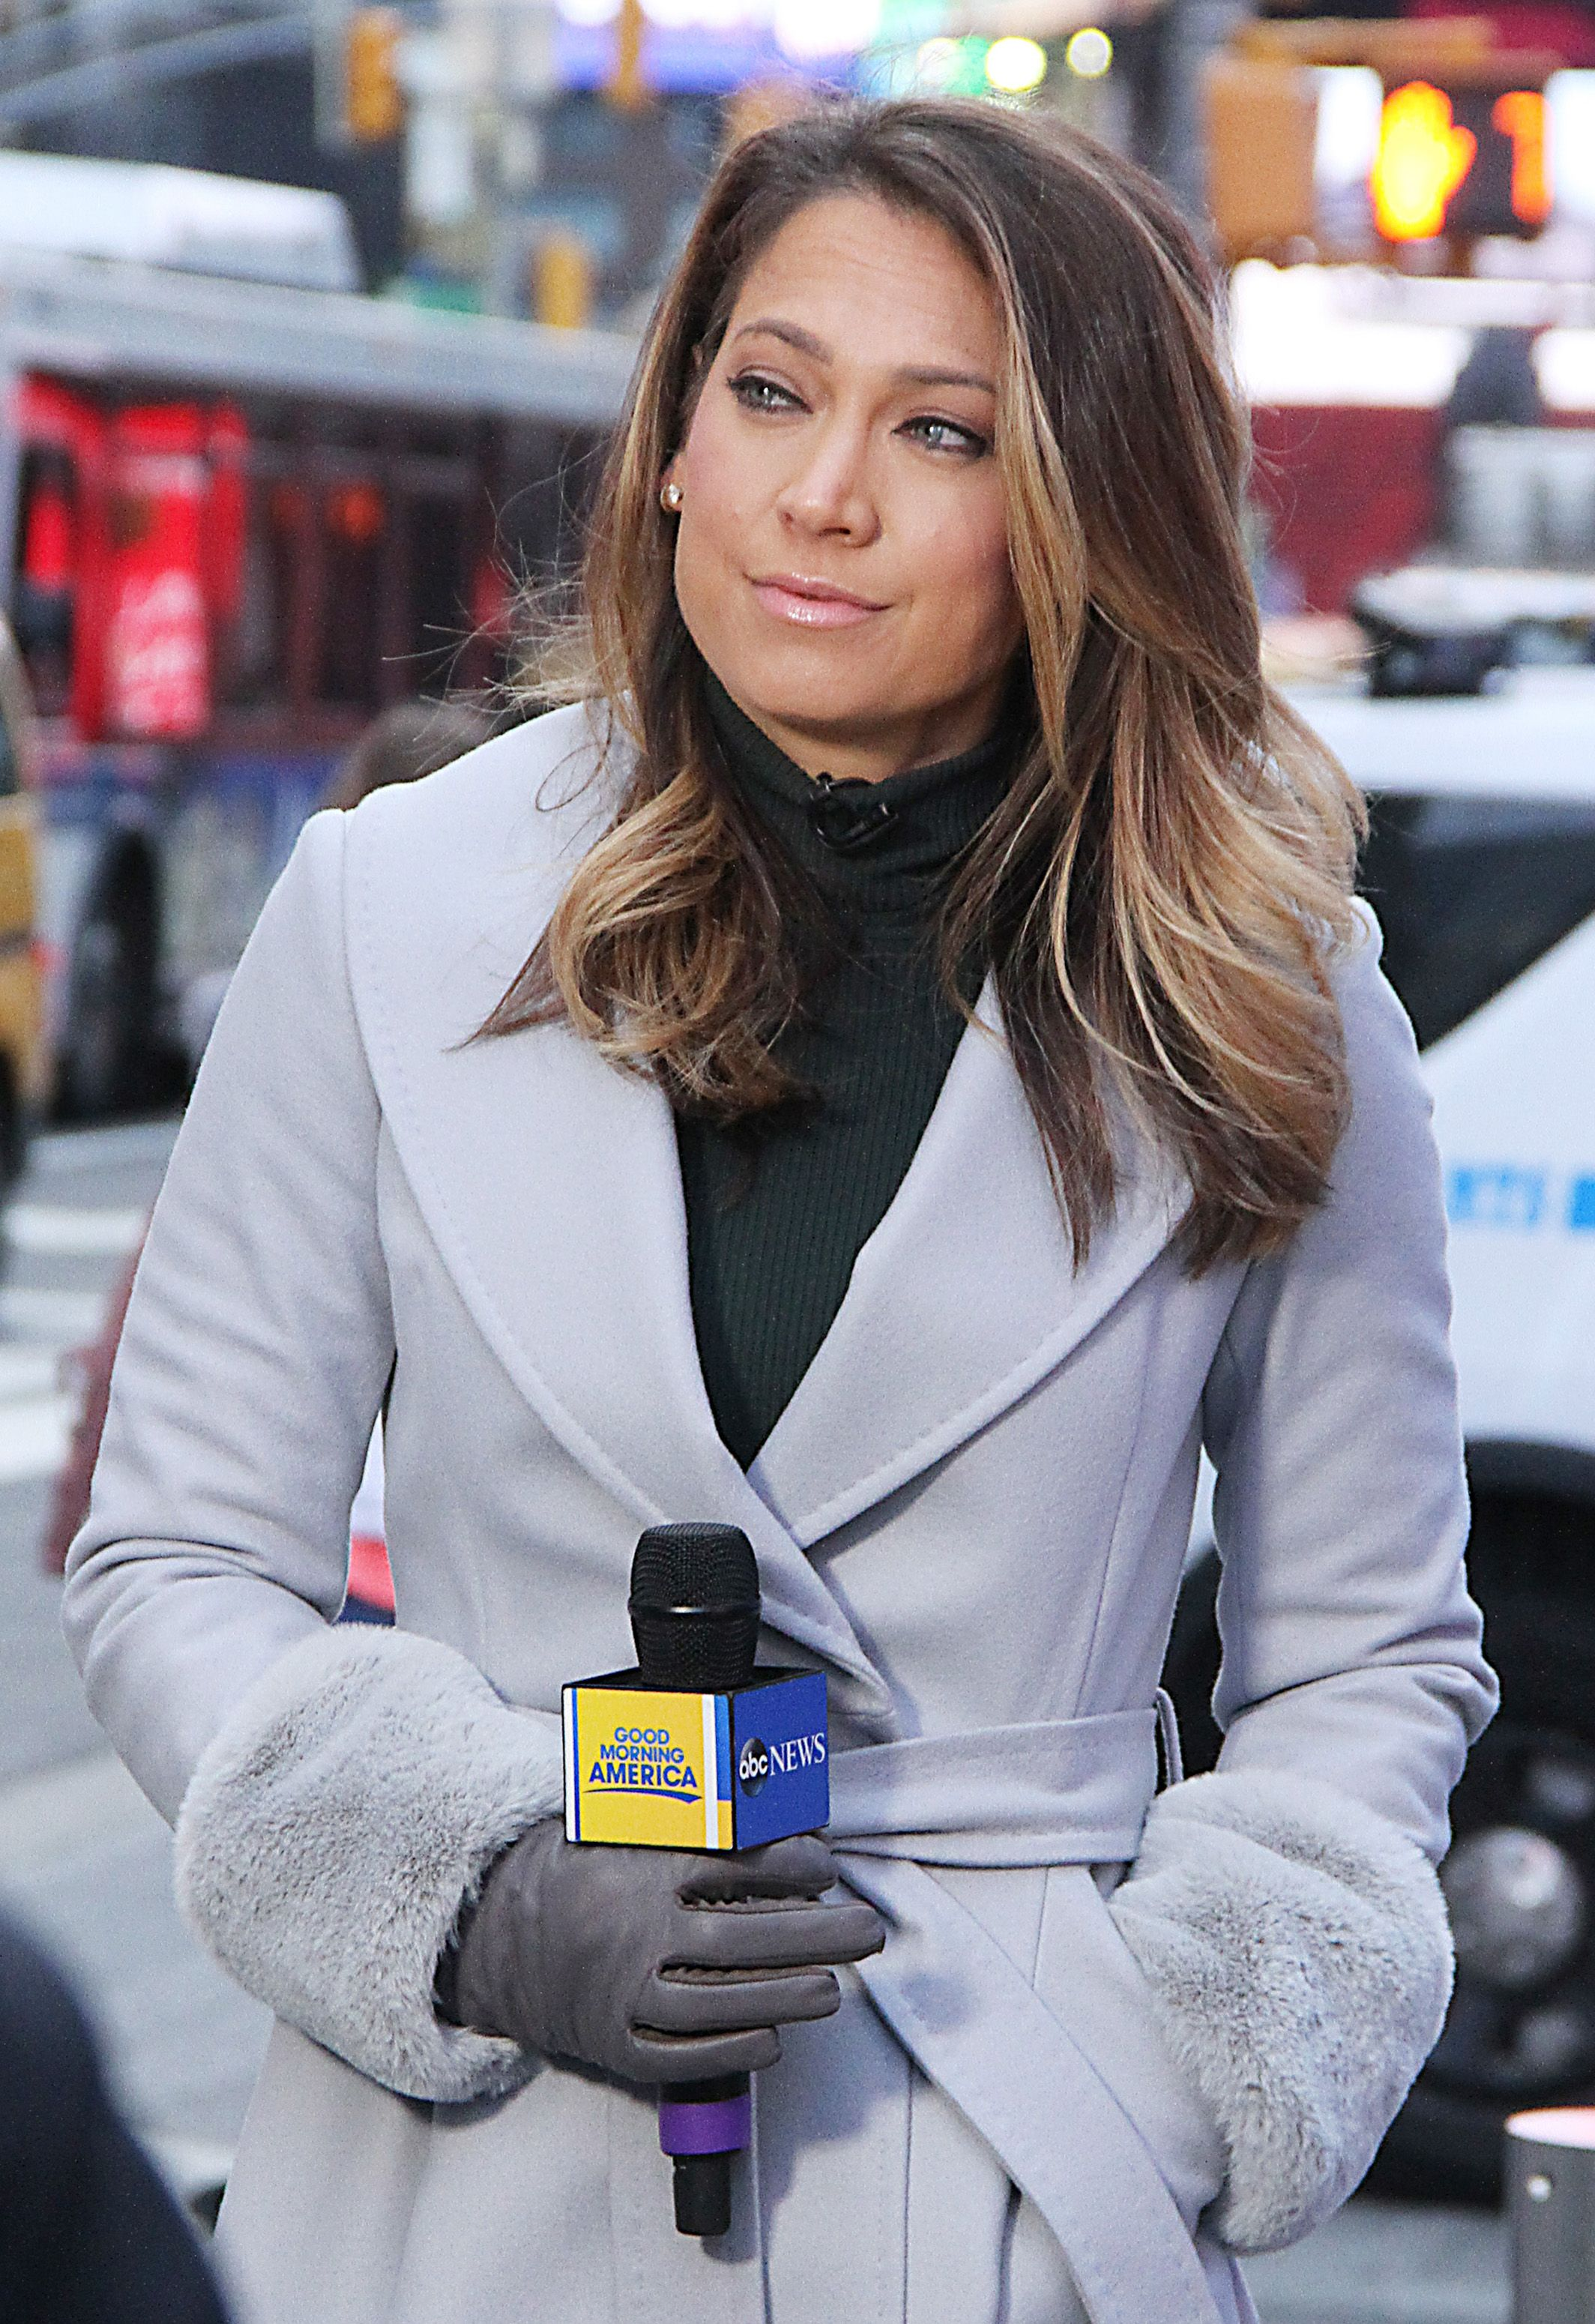 GMA Anchor Ginger Zee Slams Twitter Follower Who Called